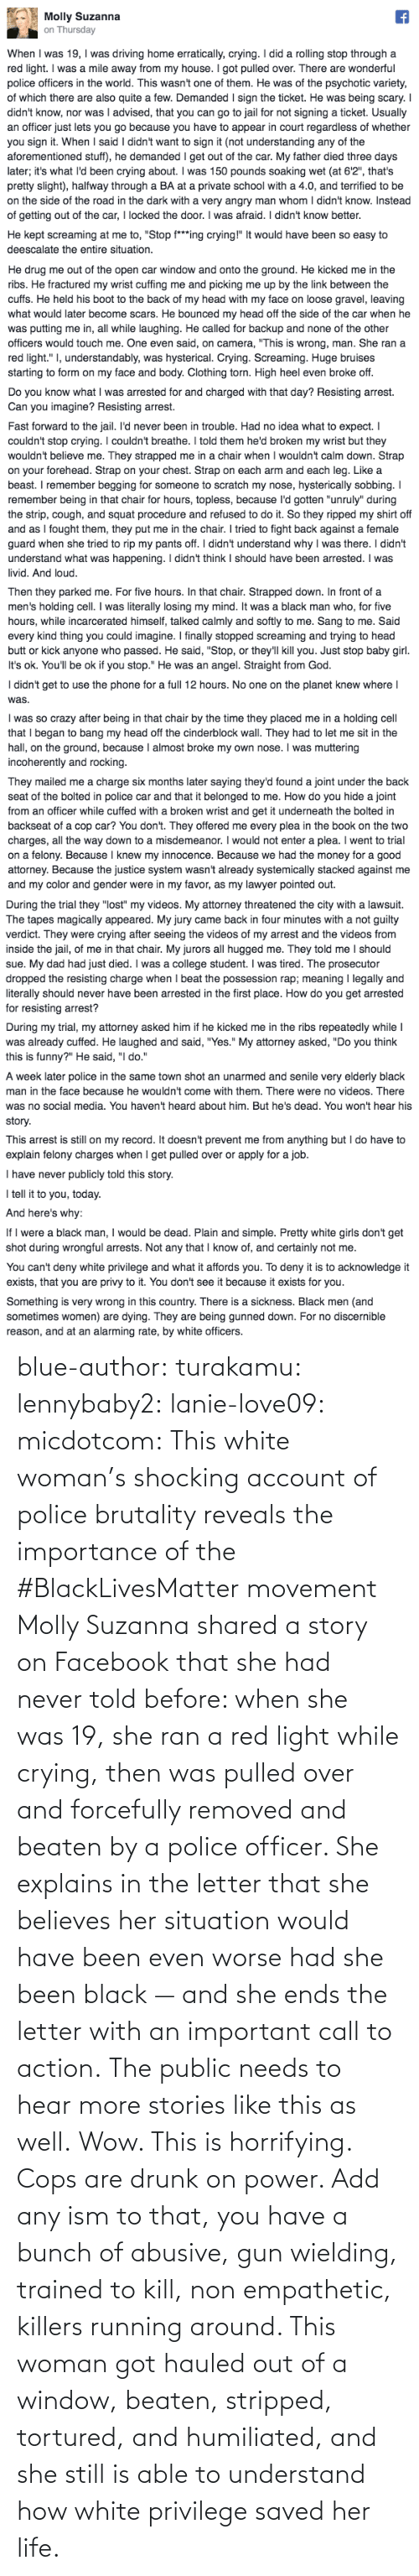 privilege: blue-author: turakamu:  lennybaby2:  lanie-love09:  micdotcom:  This white woman's shocking account of police brutality reveals the importance of the #BlackLivesMatter movement Molly Suzanna shared a story on Facebook that she had never told before: when she was 19, she ran a red light while crying, then was pulled over and forcefully removed and beaten by a police officer. She explains in the letter that she believes her situation would have been even worse had she been black — and she ends the letter with an important call to action.  The public needs to hear more stories like this as well.  Wow. This is horrifying.  Cops are drunk on power. Add any ism to that, you have a bunch of abusive, gun wielding, trained to kill, non empathetic, killers running around.    This woman got hauled out of a window, beaten, stripped, tortured, and humiliated, and she still is able to understand how white privilege saved her life.